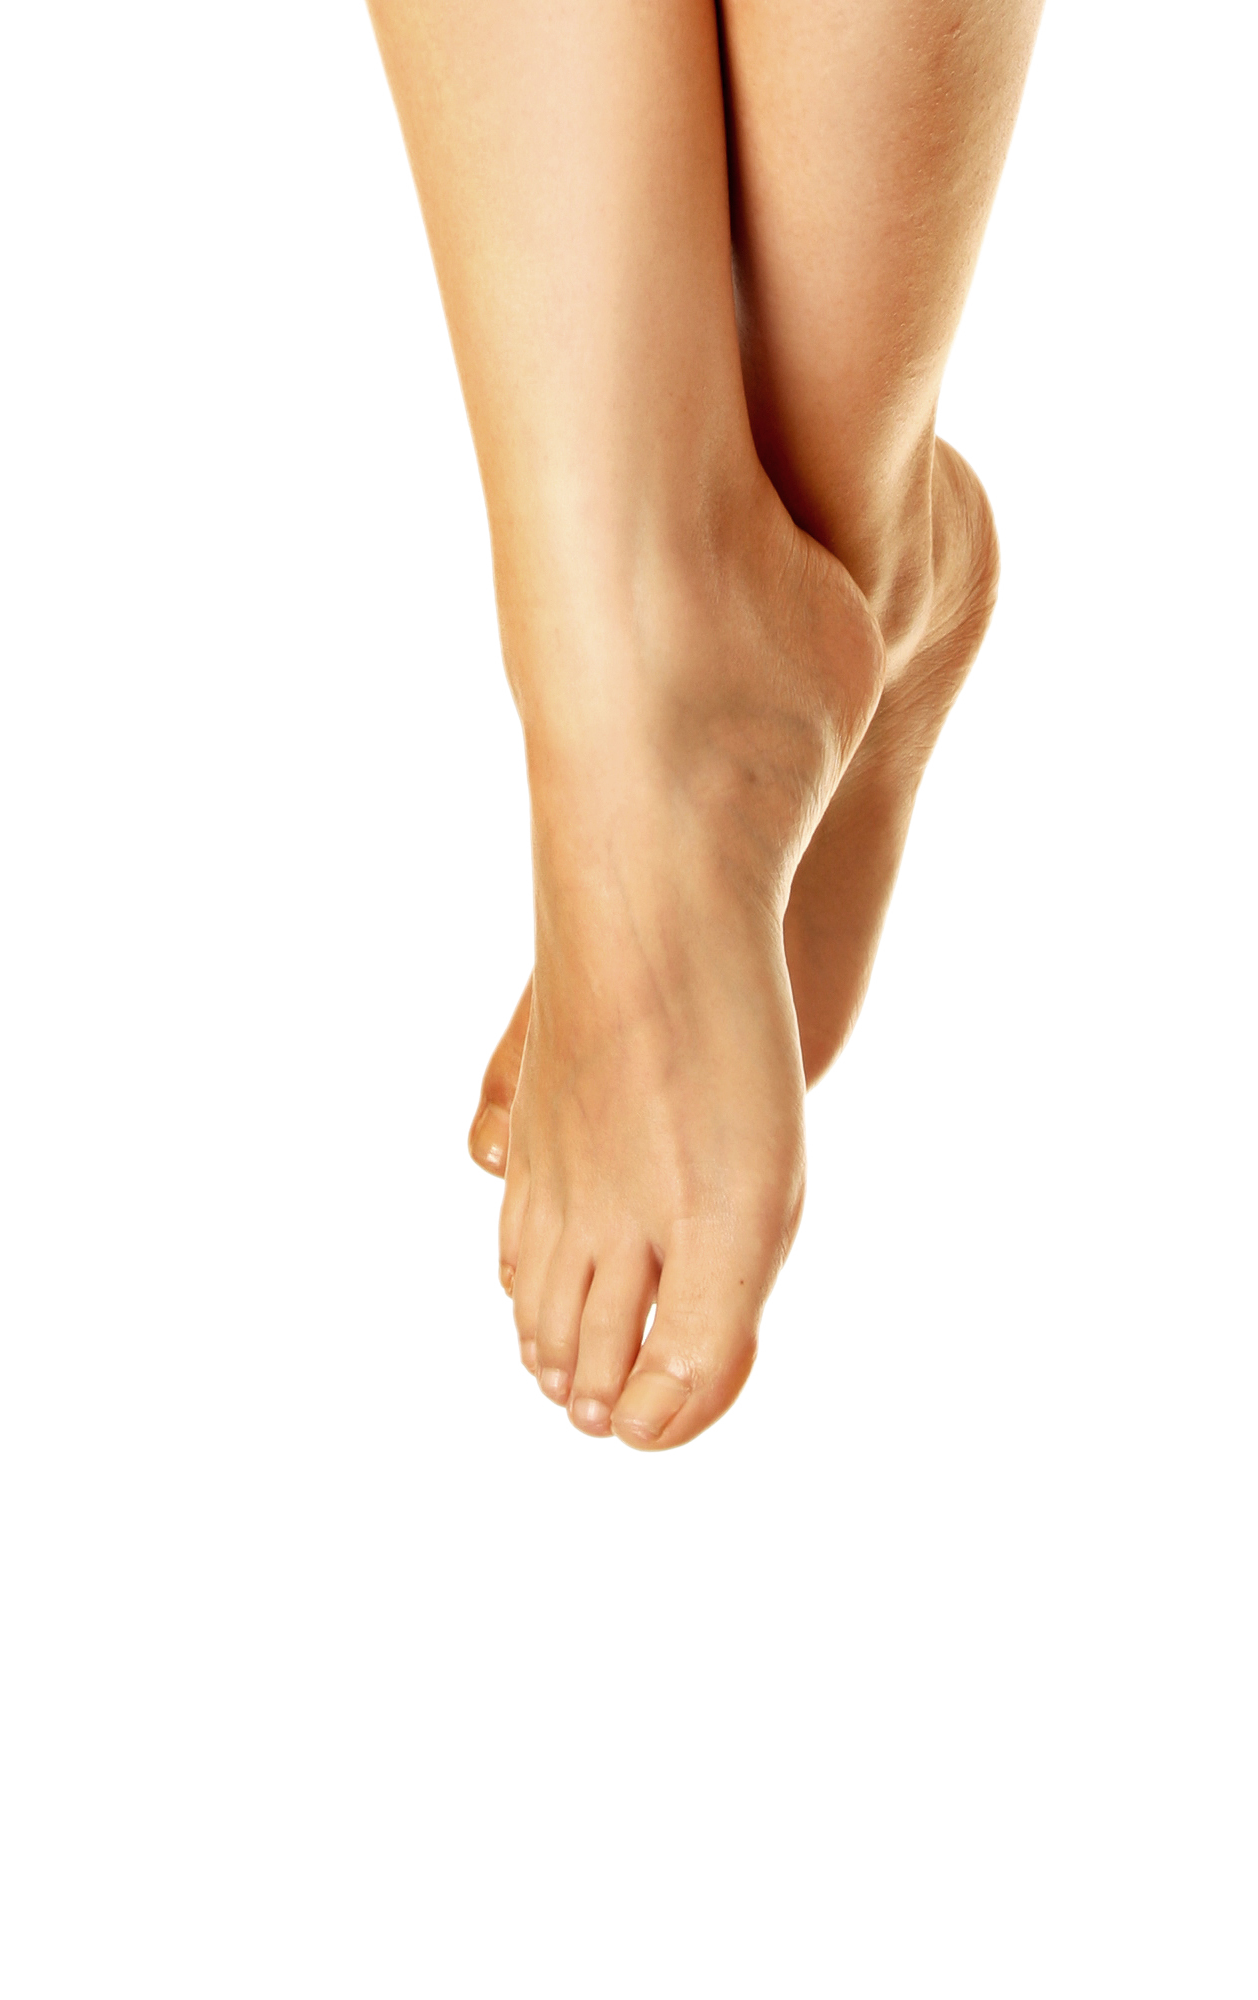 Legs clipart ankle joint, Legs ankle joint Transparent FREE.